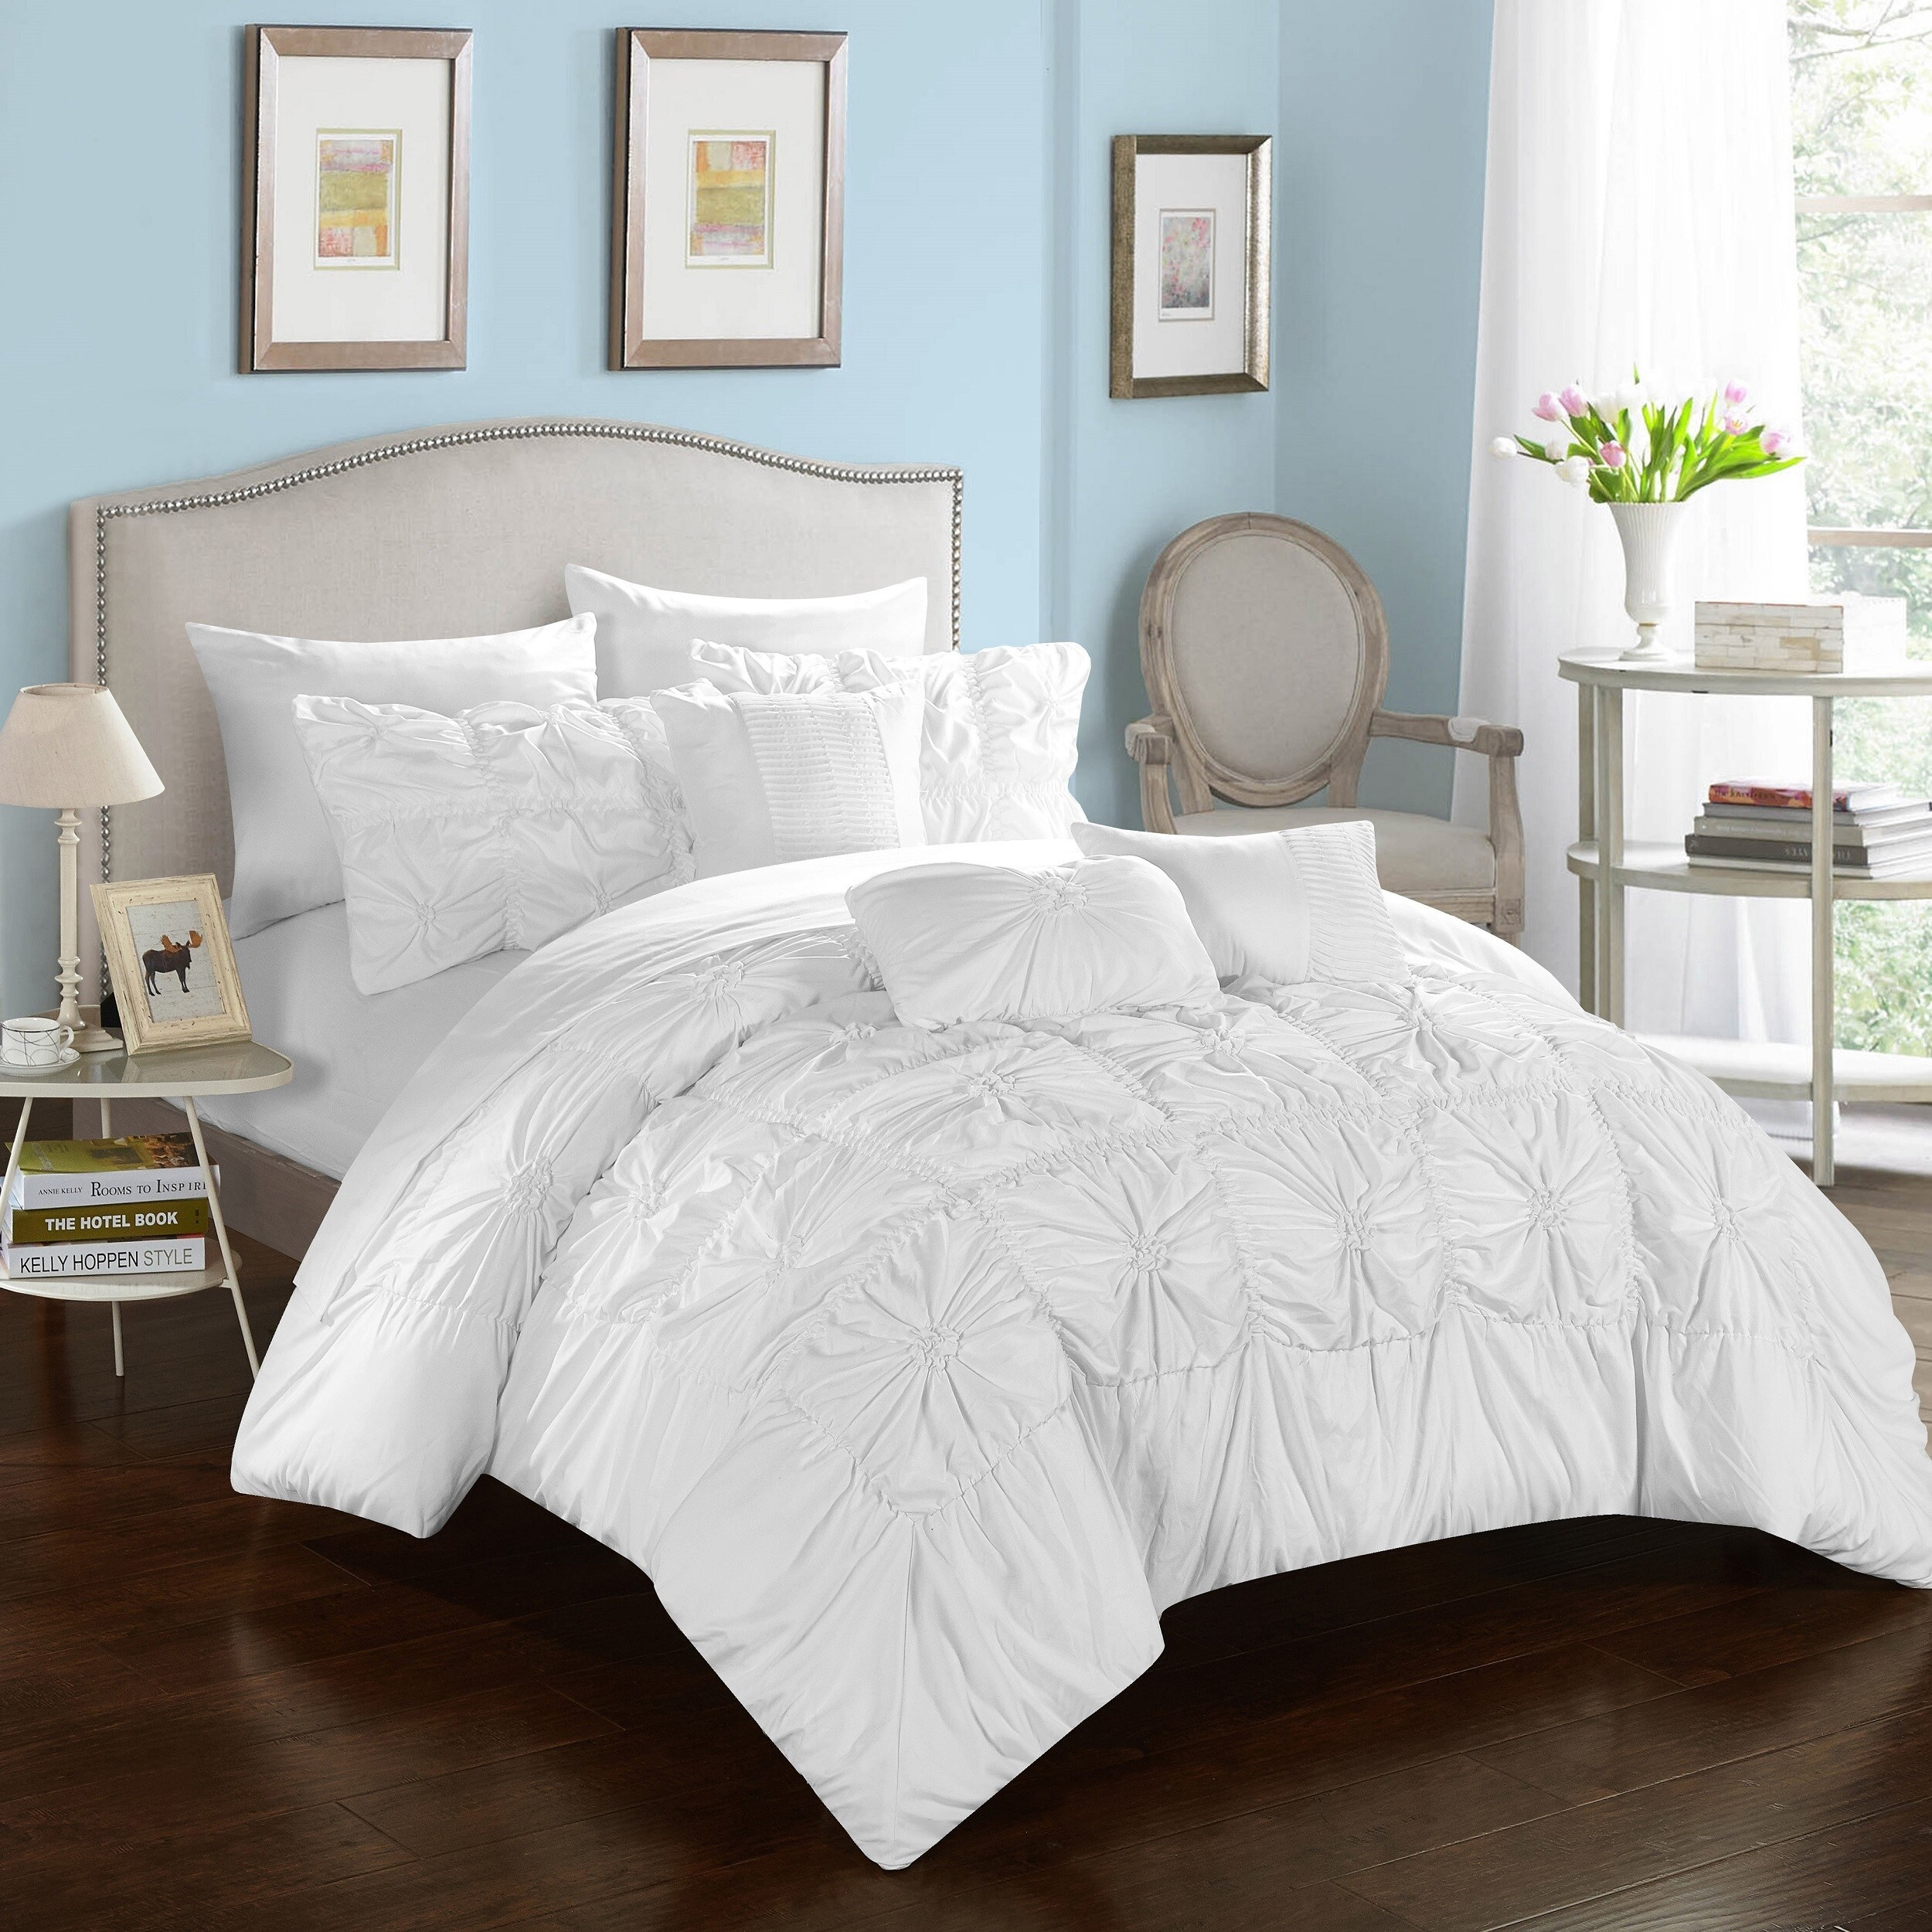 Oliver & James Siah White 10-piece Bed in a Bag Comforter Set - Free ...